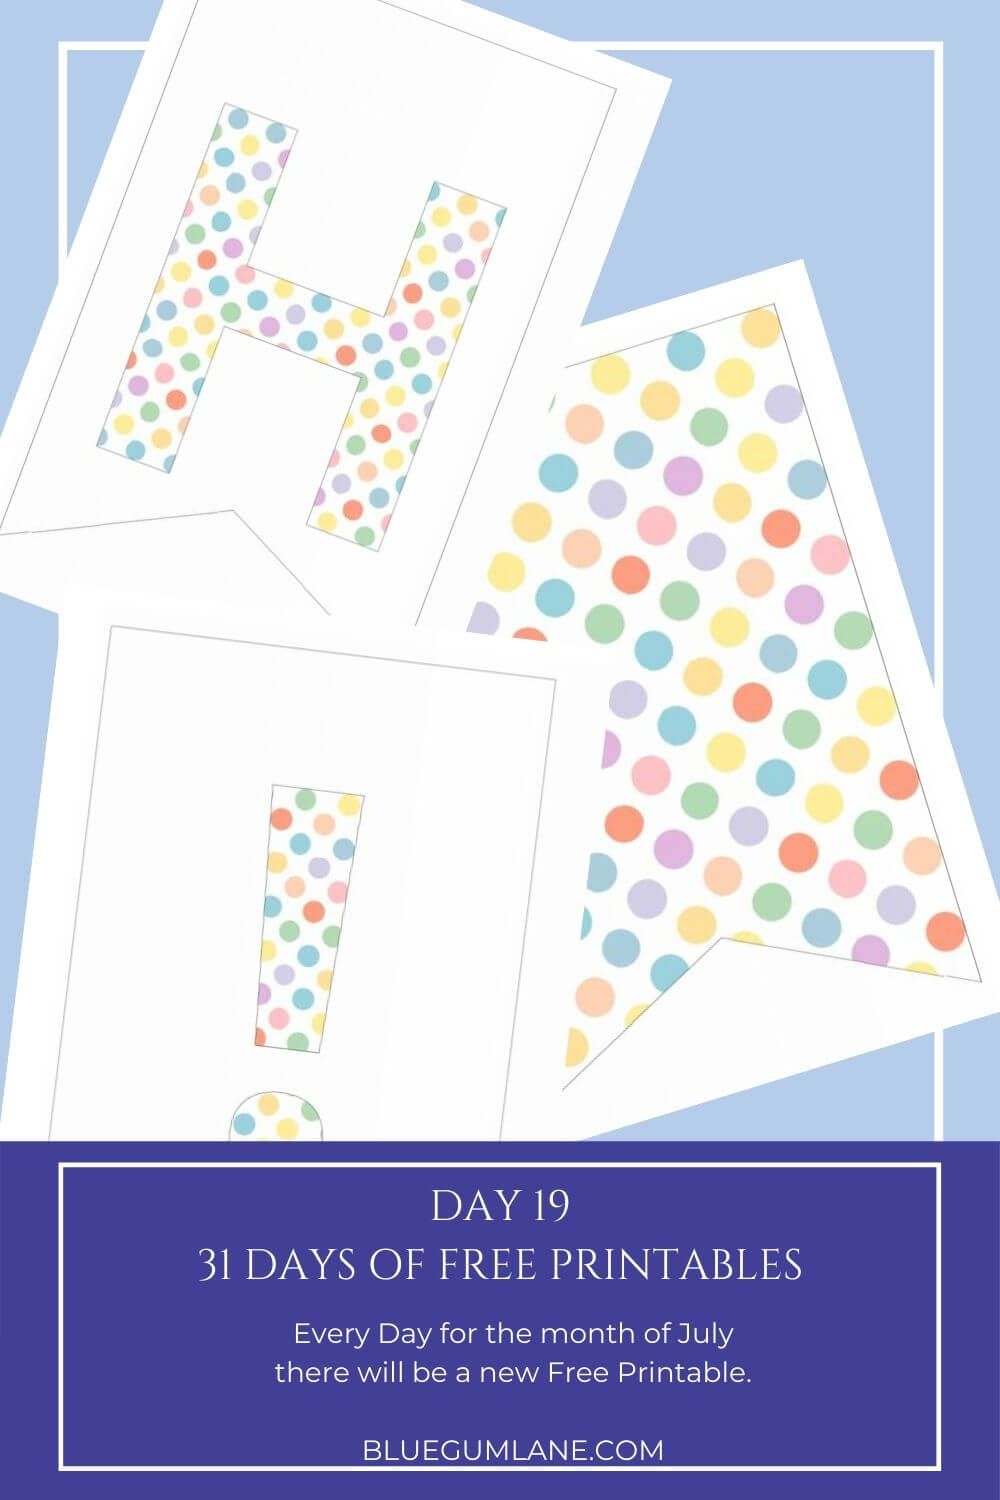 Day 19 Free Printables For 31 Days Blue Gum Lane In 2020 Free Printables Planner Inserts Printable Printable Planner